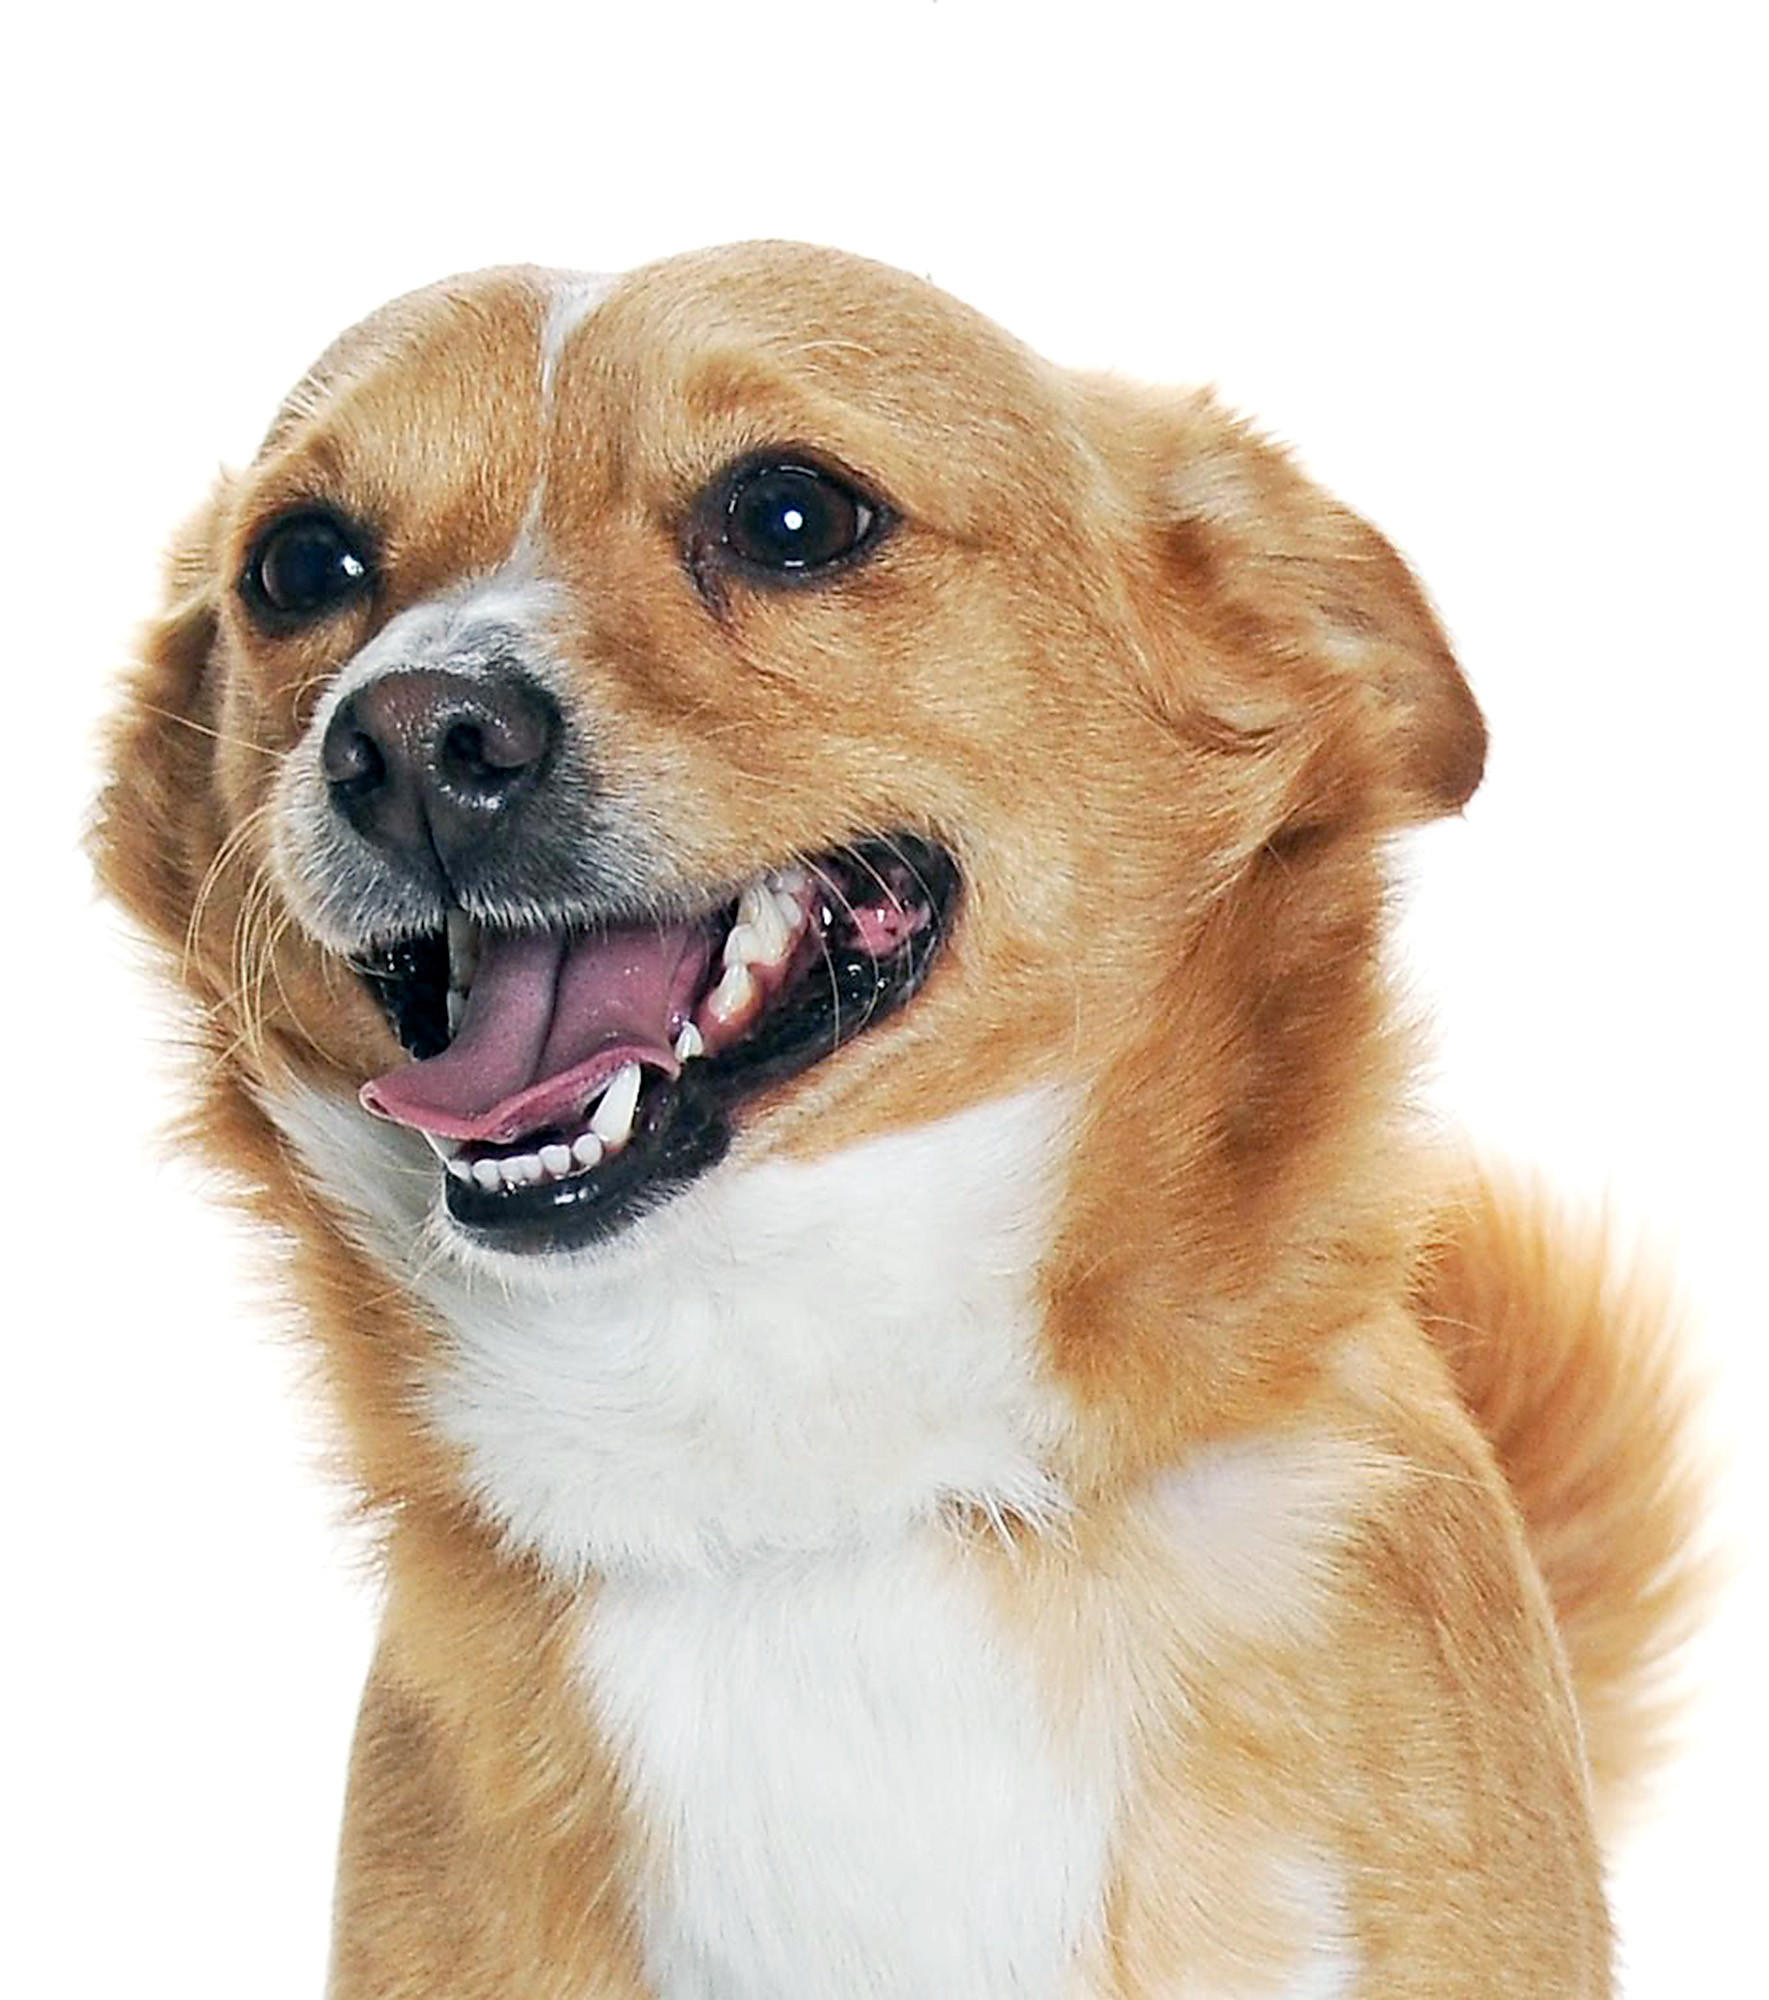 King is a 2.5-year-old gold and white Chihuahua/Welsh Corgi mix up for adoption at the Burbank Animal Shelter.